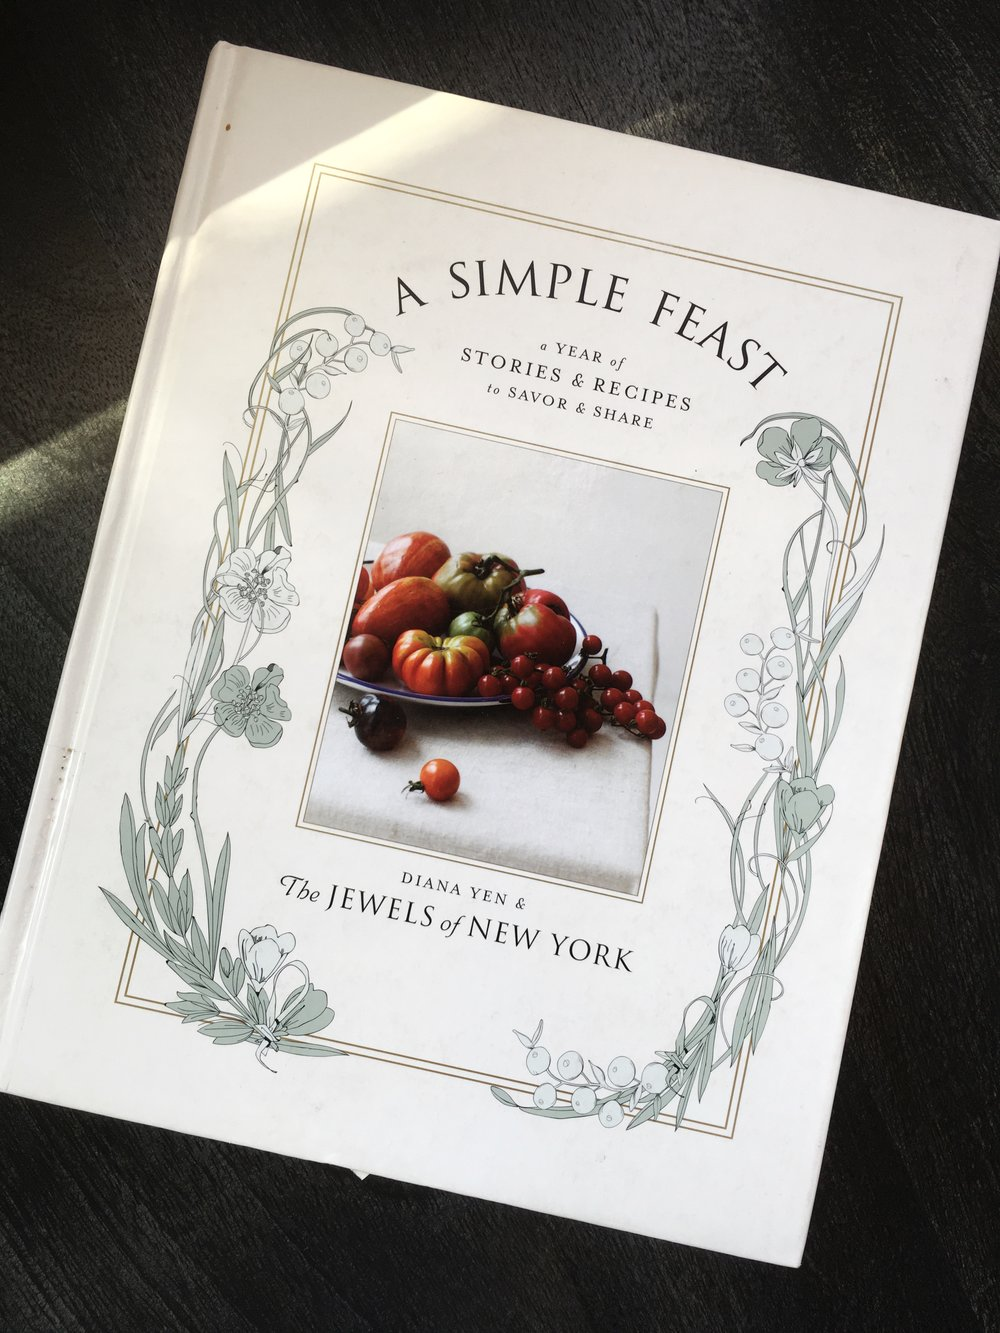 A Simple Feast, by Diana Yen & The Jewels of New York